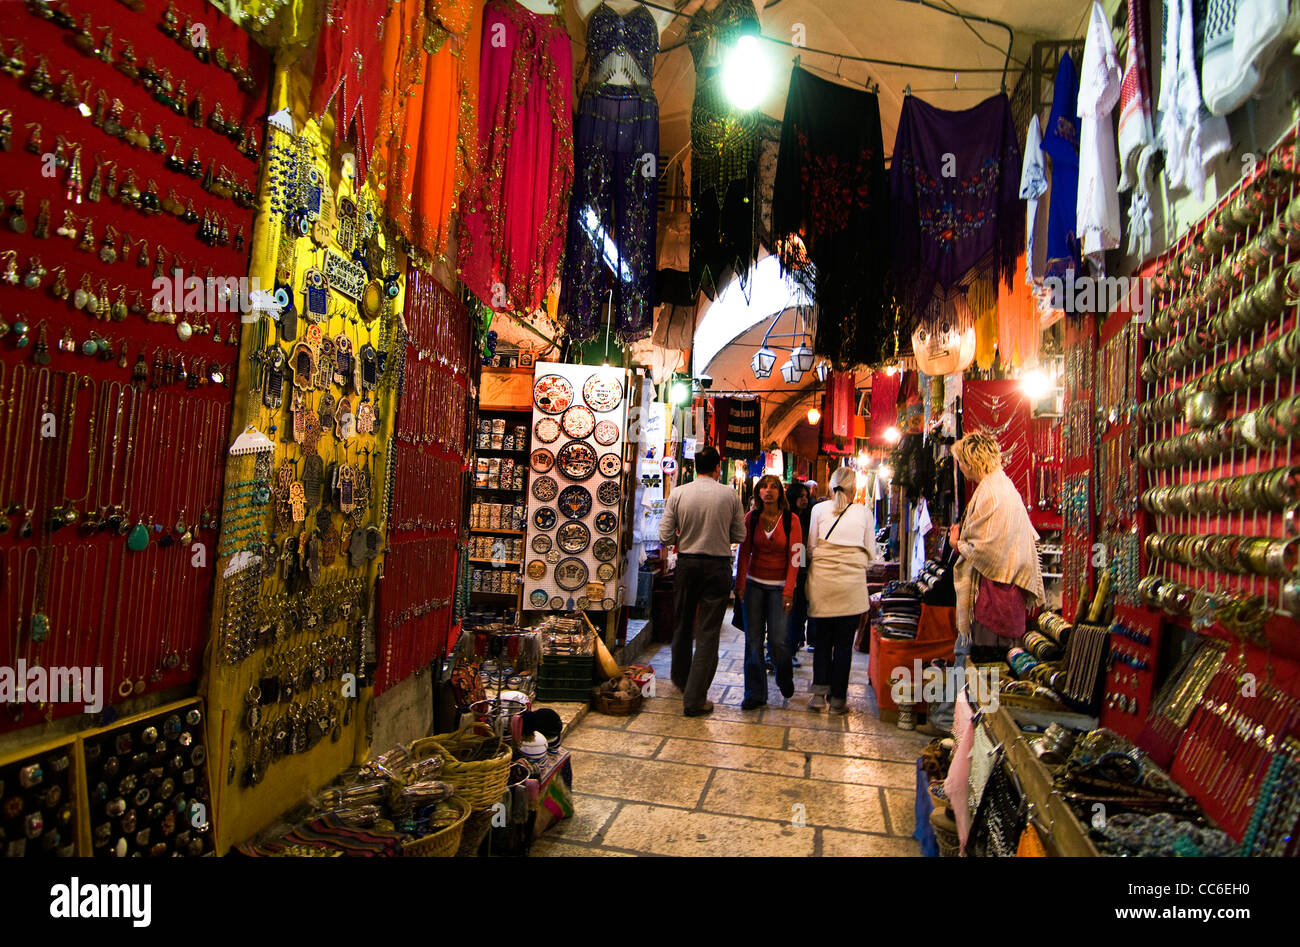 souvenir shops in the old bazaar in the old city of